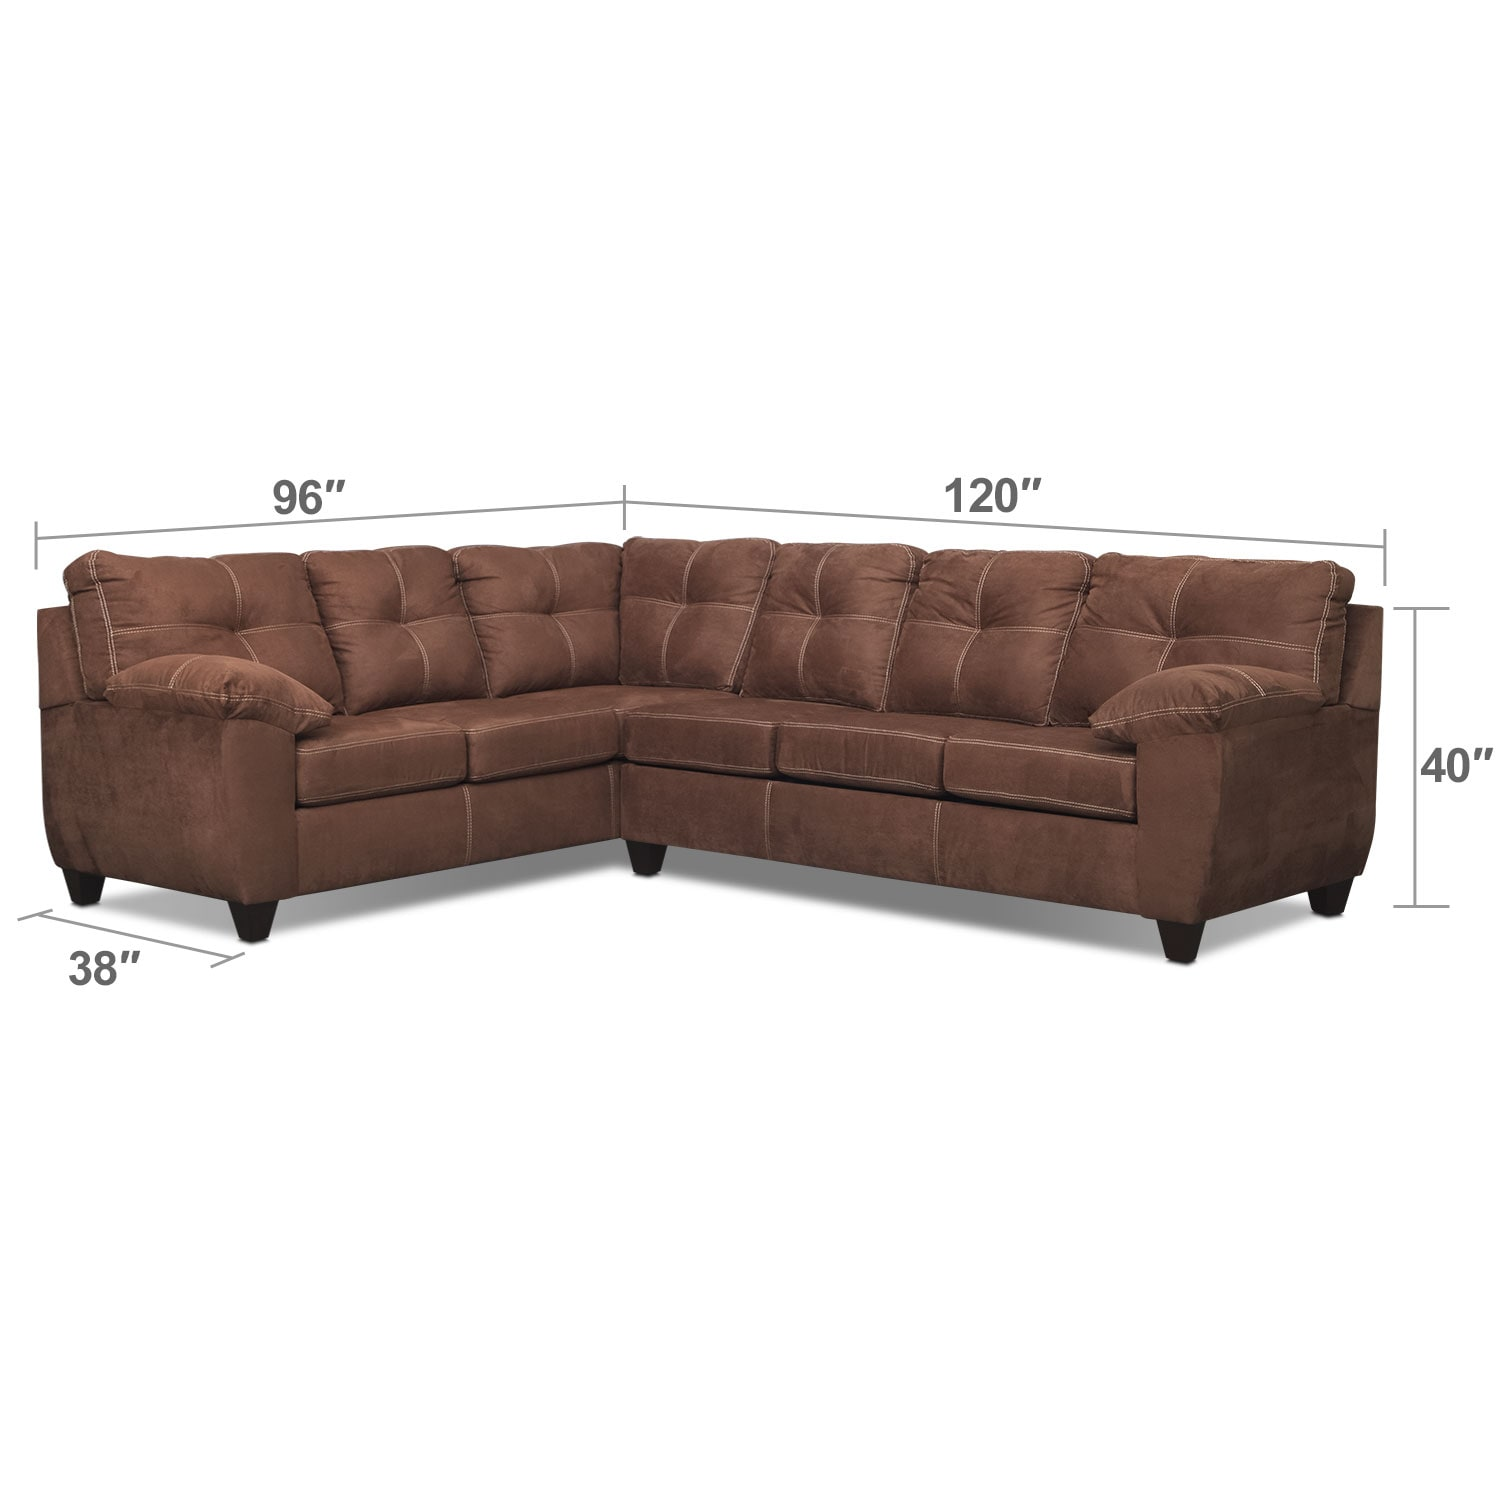 Living Room Furniture - Rialto 2-Piece Sectional with Right-Facing Memory Foam Sleeper - Coffee